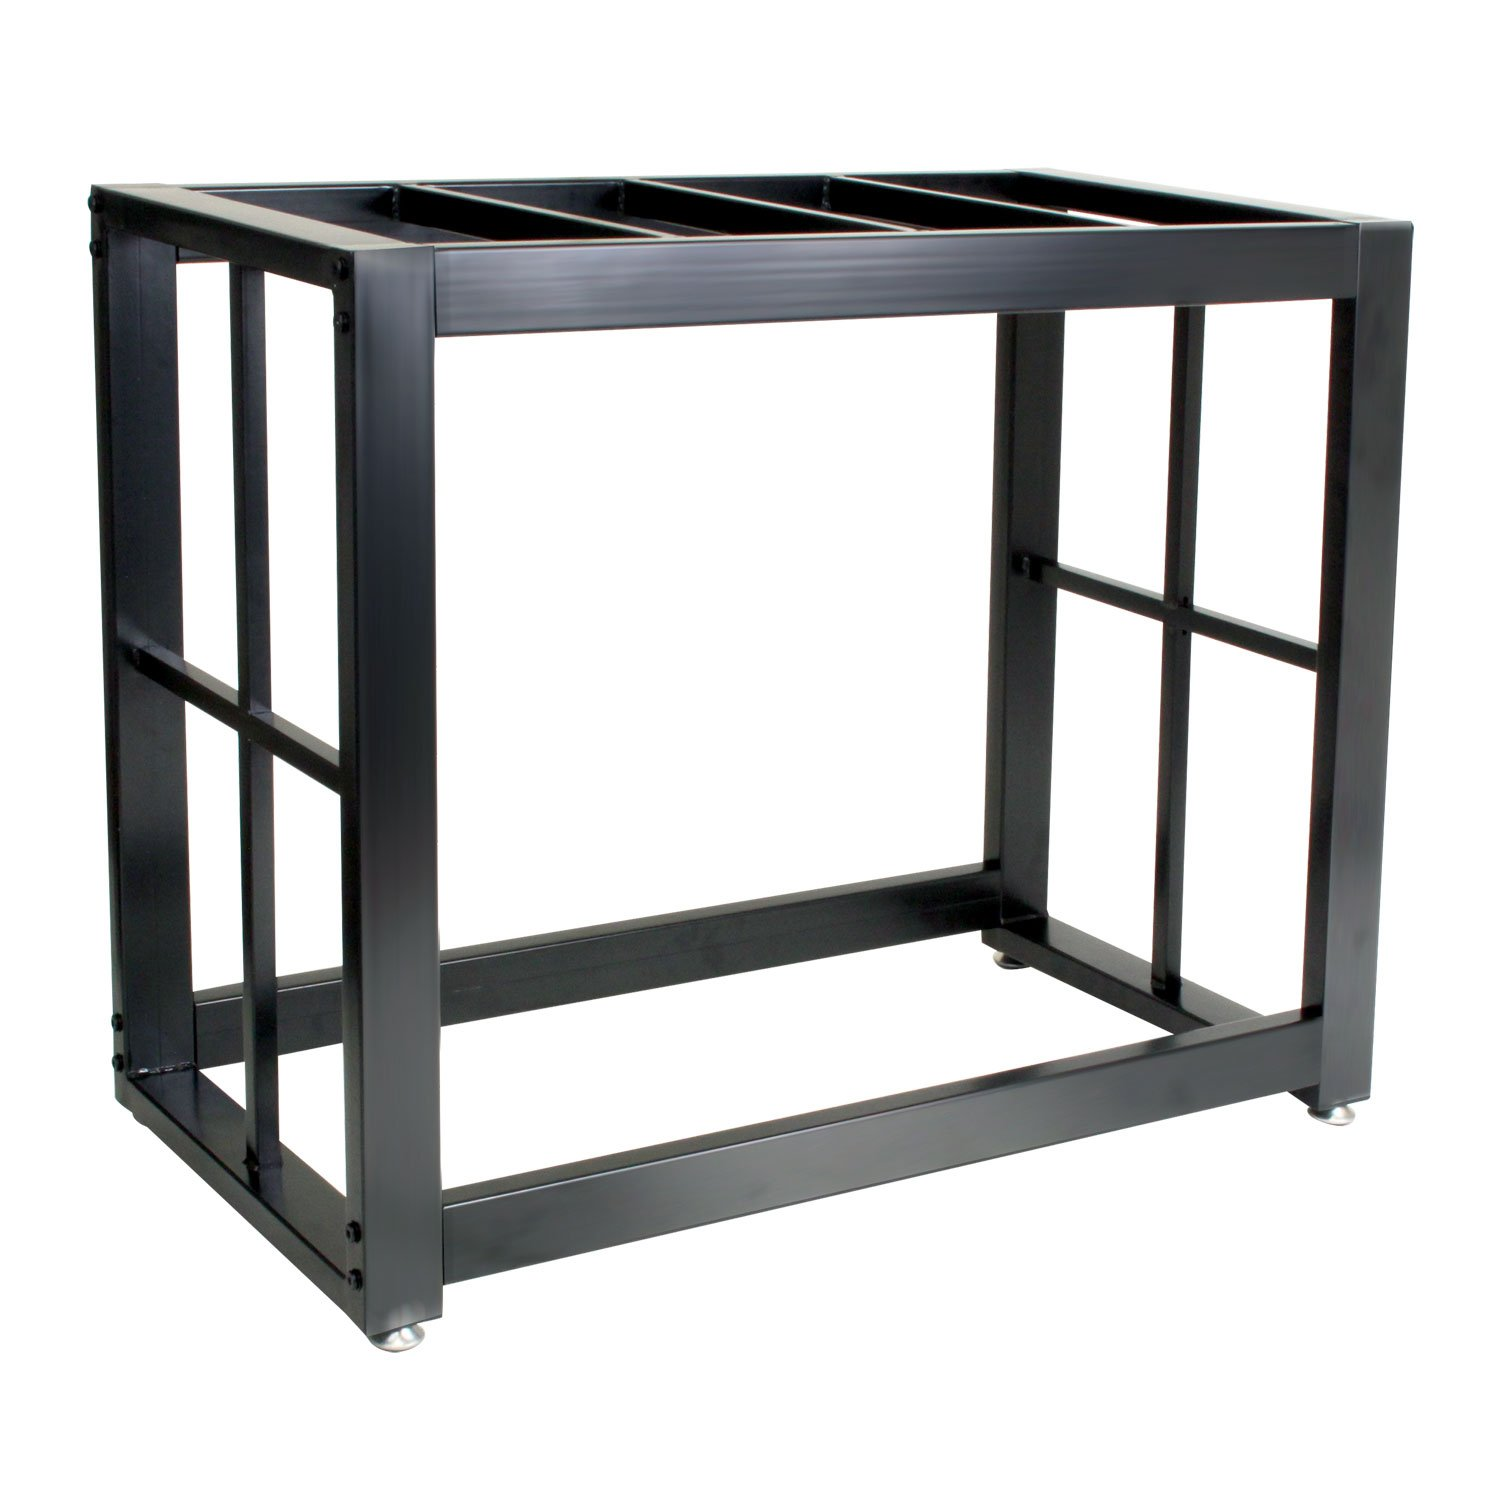 Imagitarium Brooklyn Metal Tank Stand, 40 Gallons | Petco 10 Gallon Fish Tank Stand Metal